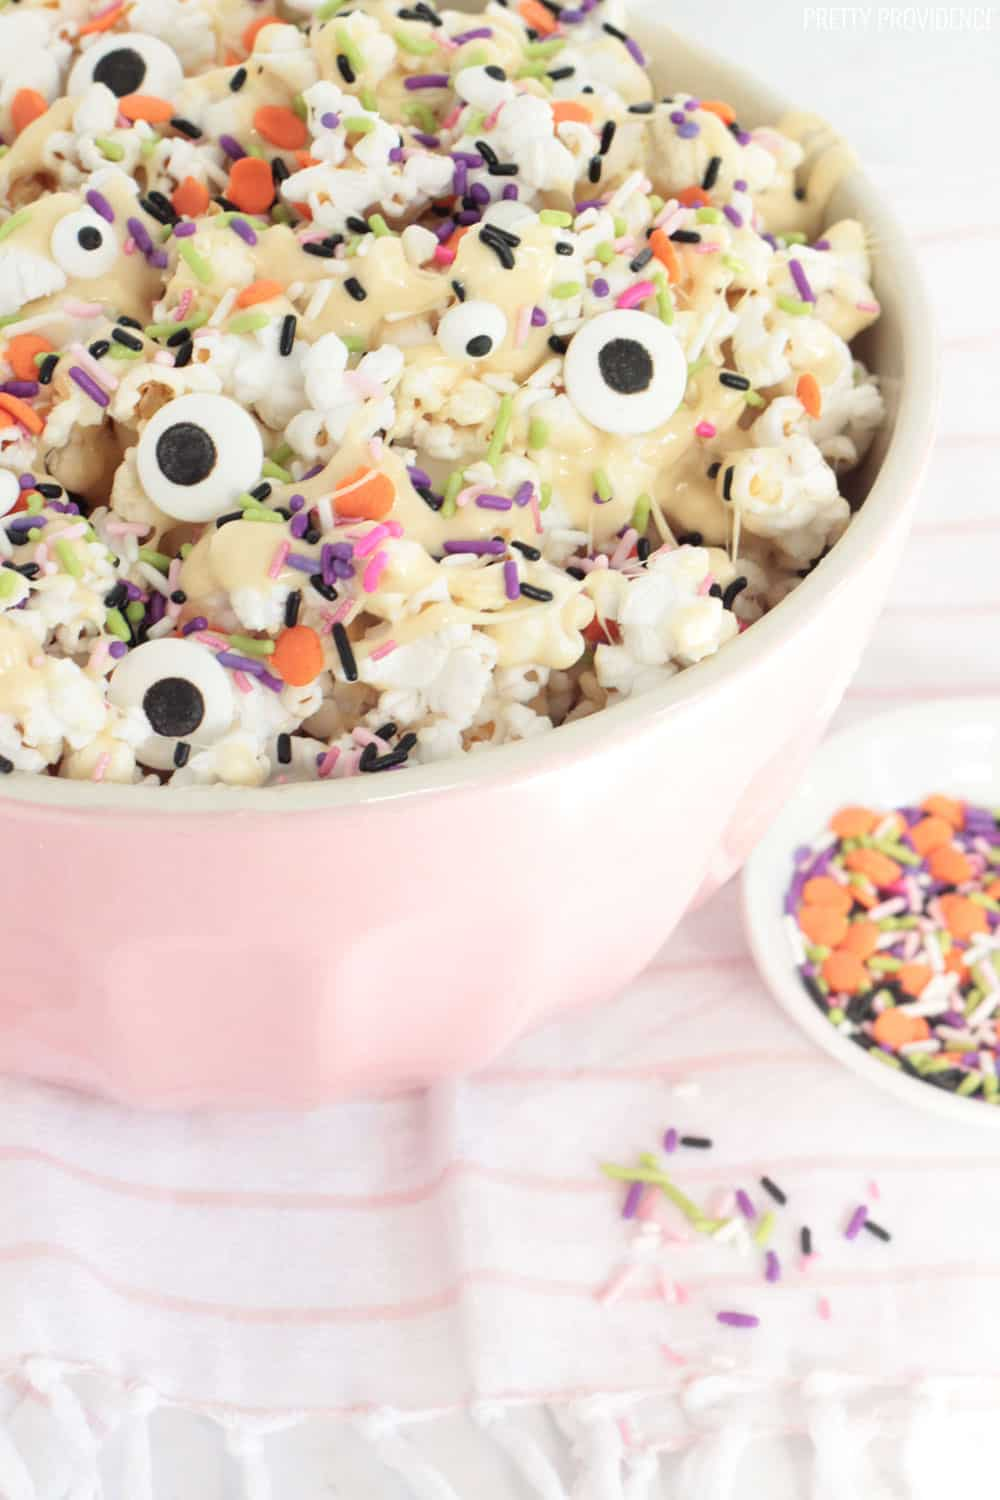 Marshmallow Popcorn in a pink mixing bowl, with Halloween sprinkles and candy eyeballs throughout. Spooky Monster Marshmallow Popcorn!